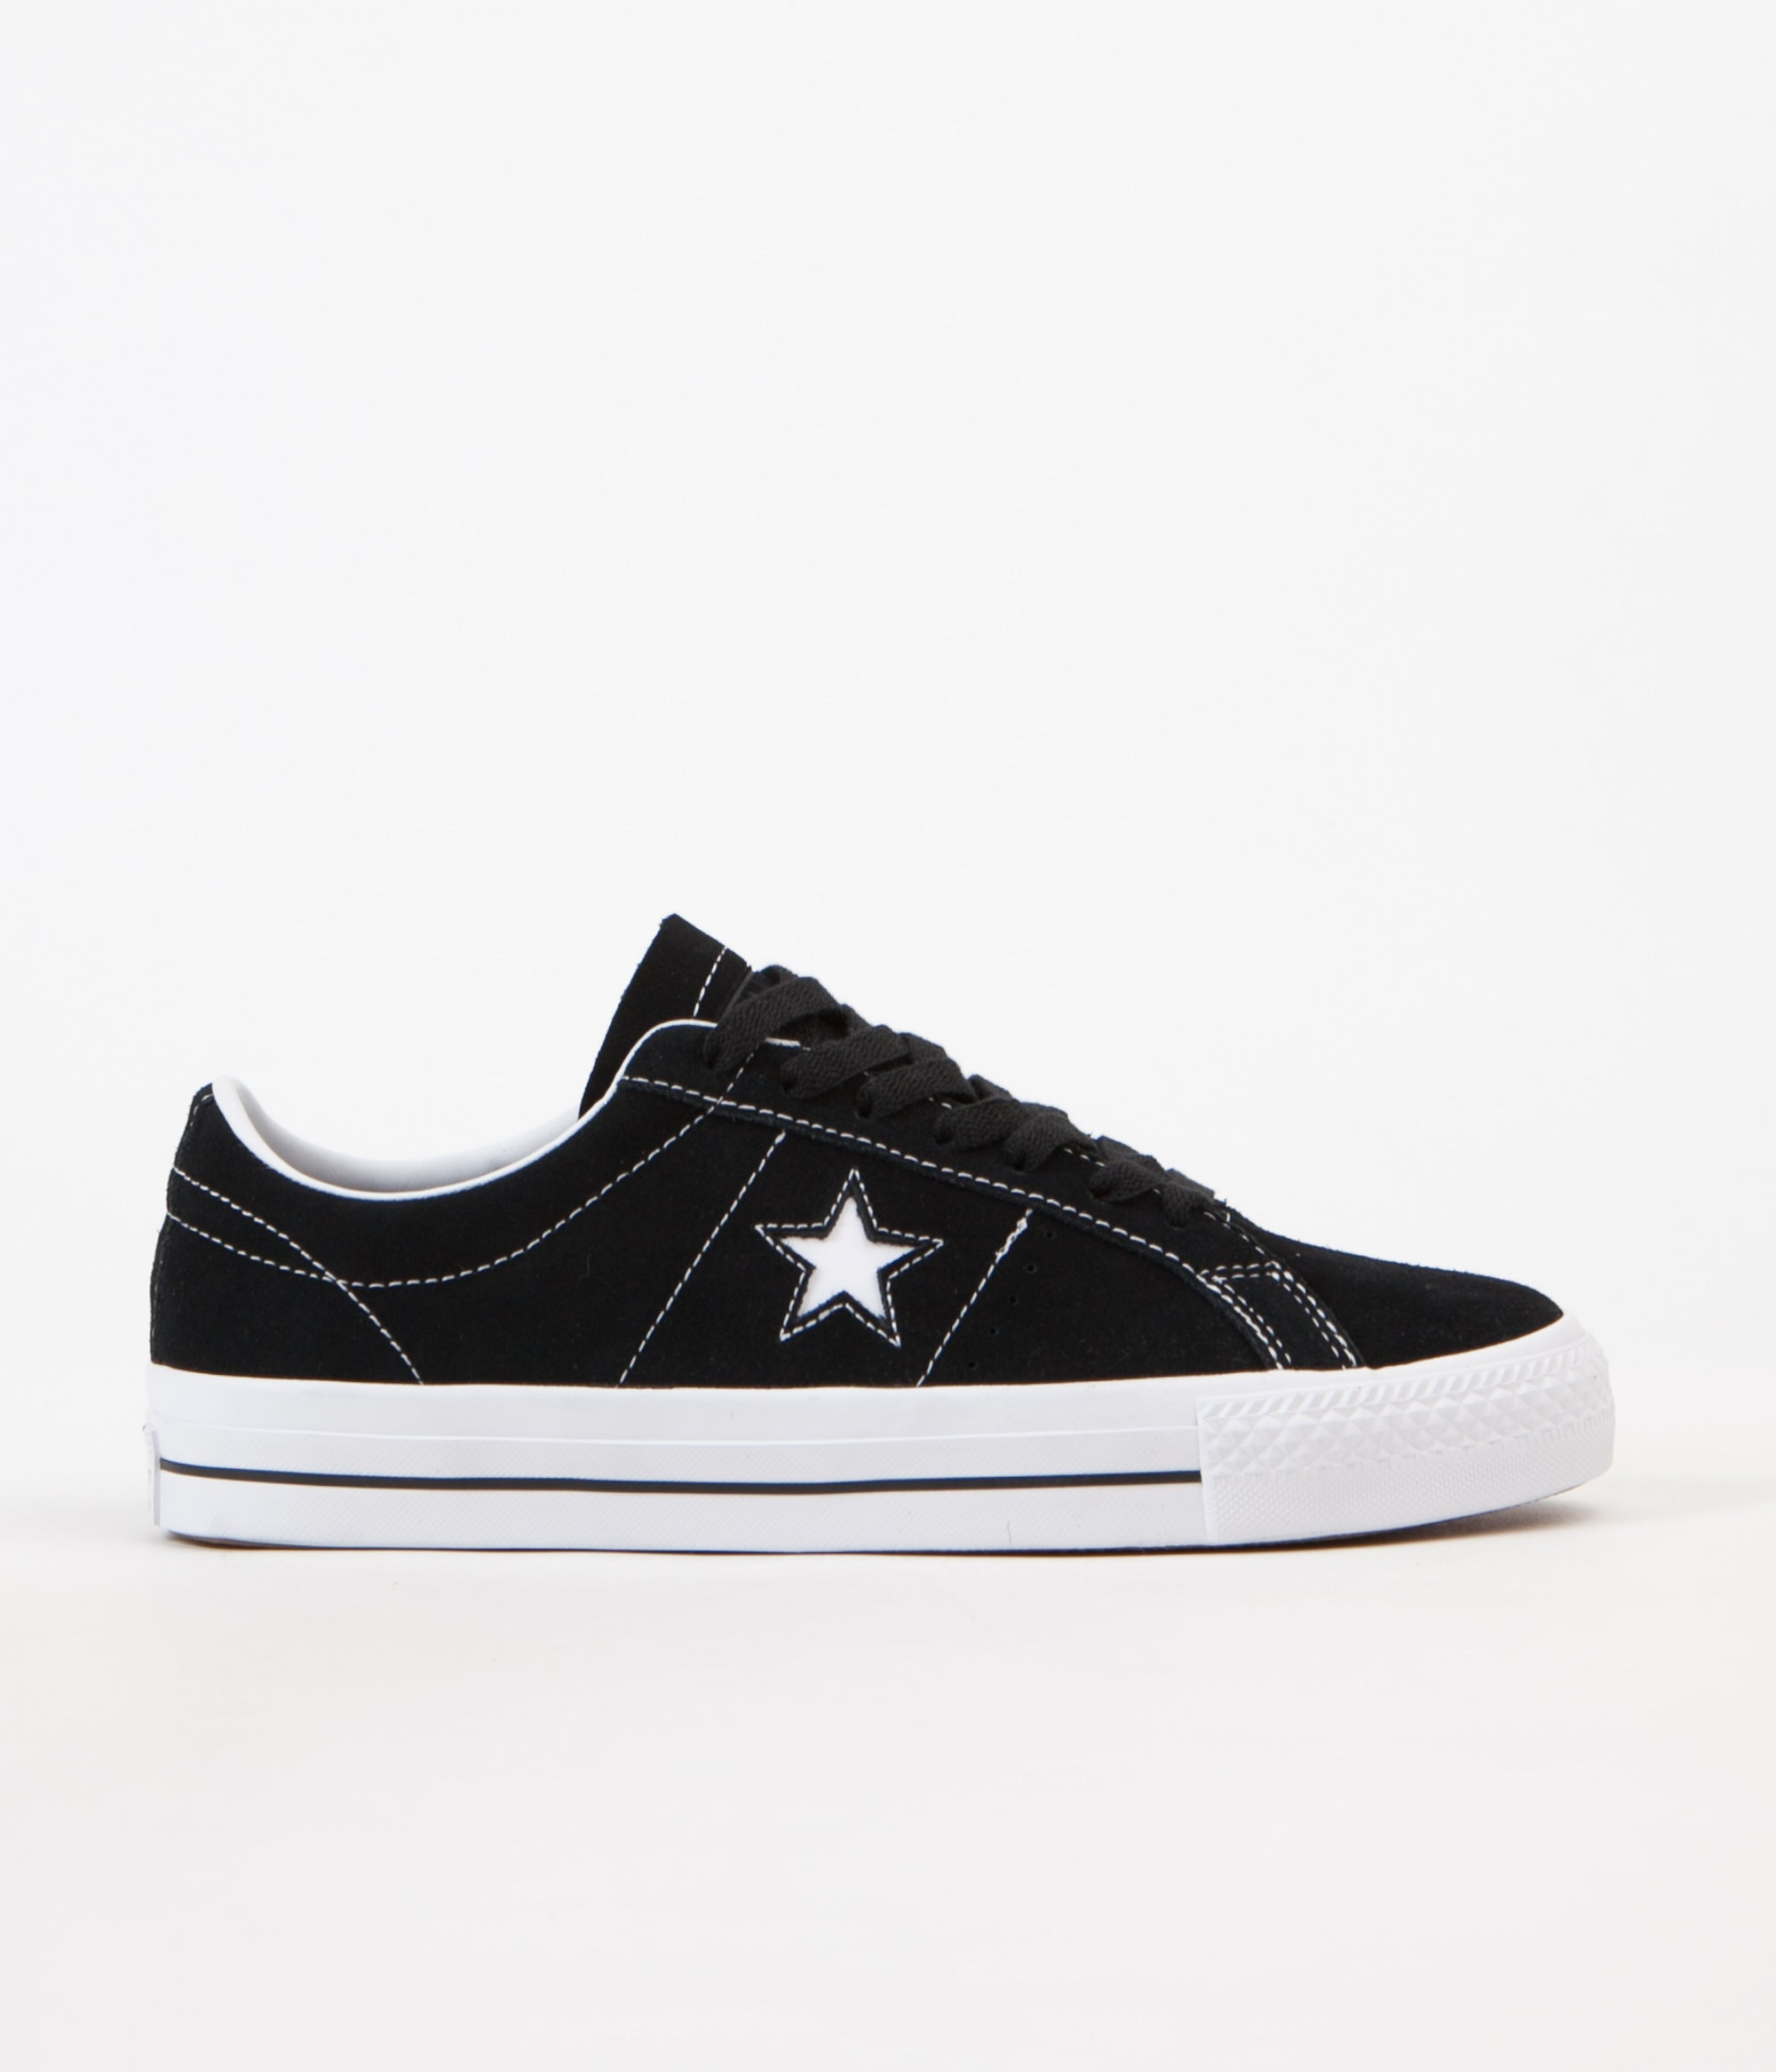 Converse One Star Pro Ox Shoes - Black